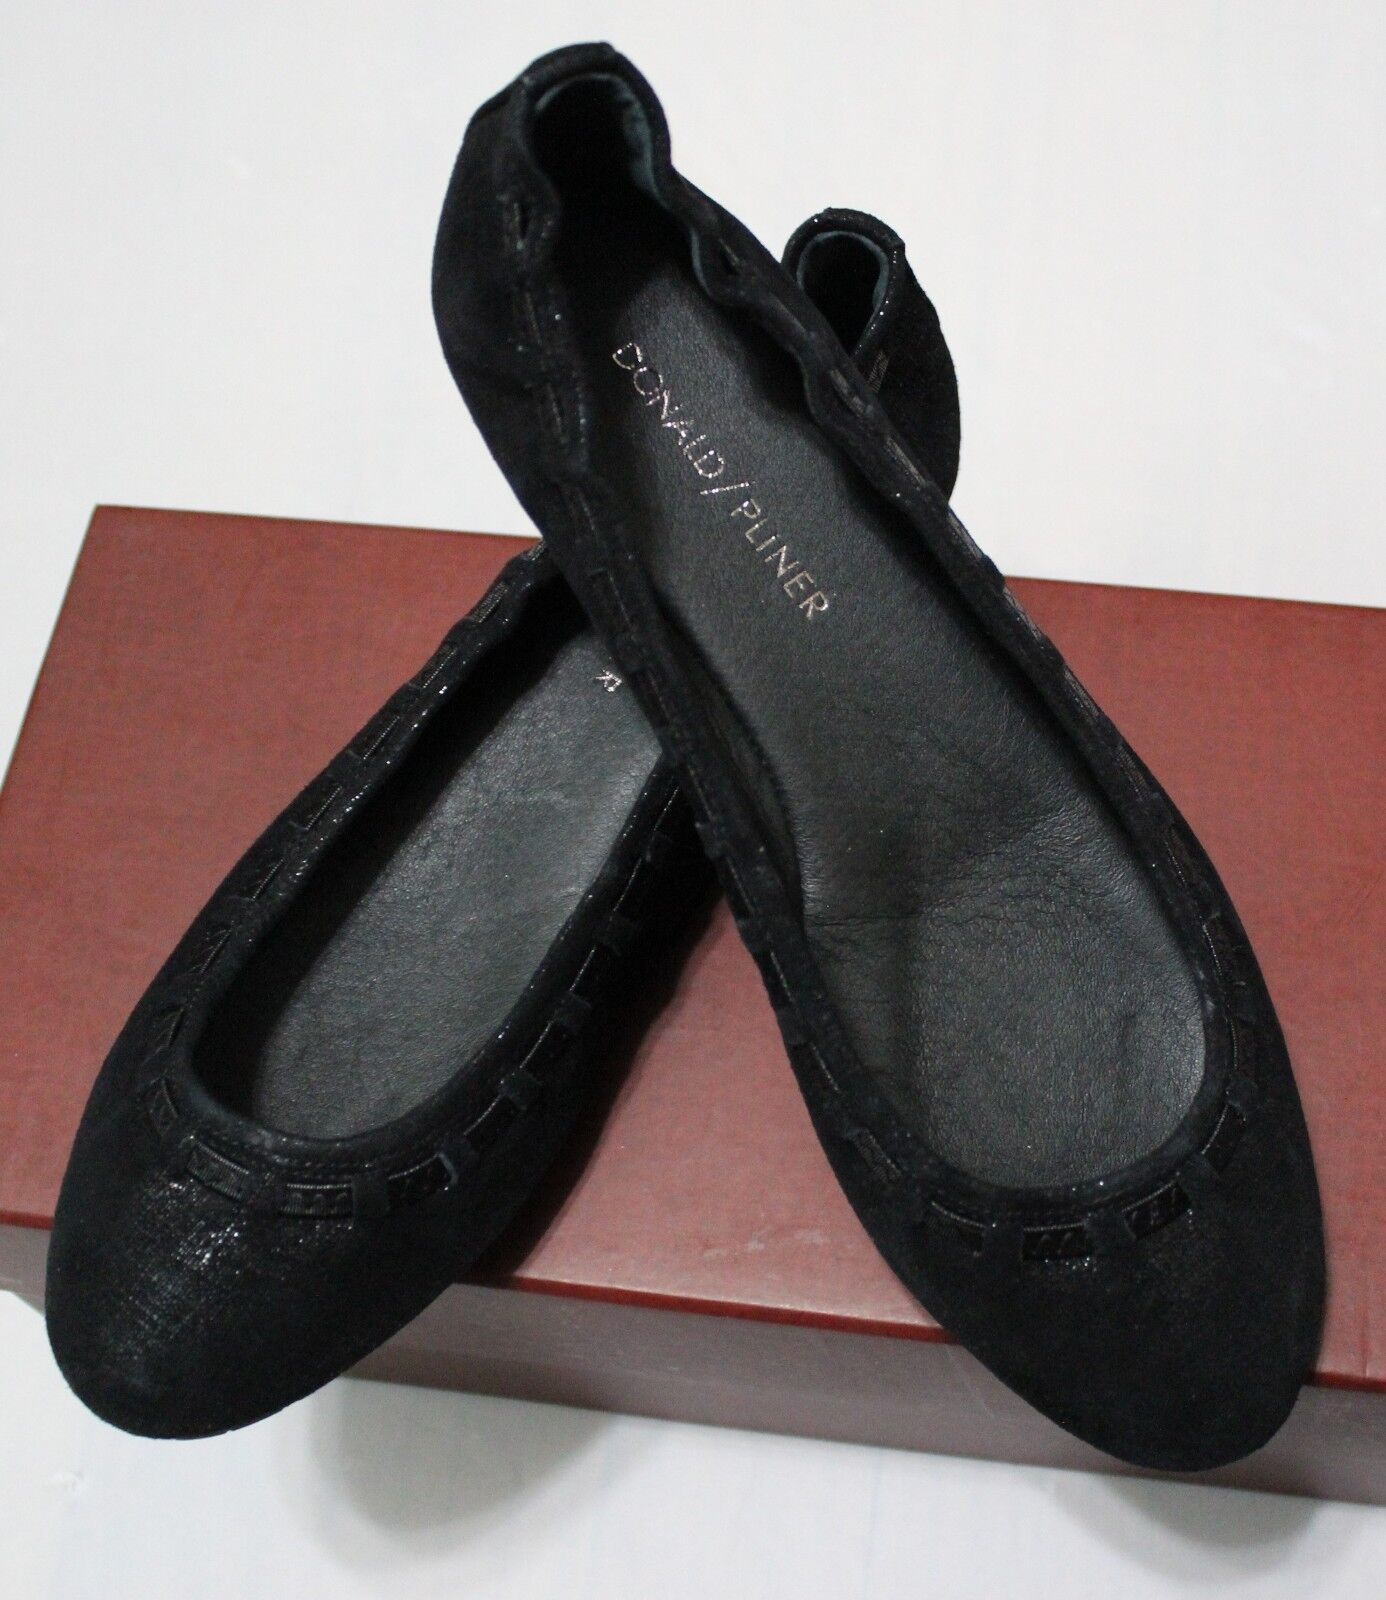 198 DONALD J PLINER PADDI BLACK DISTRESSED METALLIC SUEDE BALLET FLATS US 7M